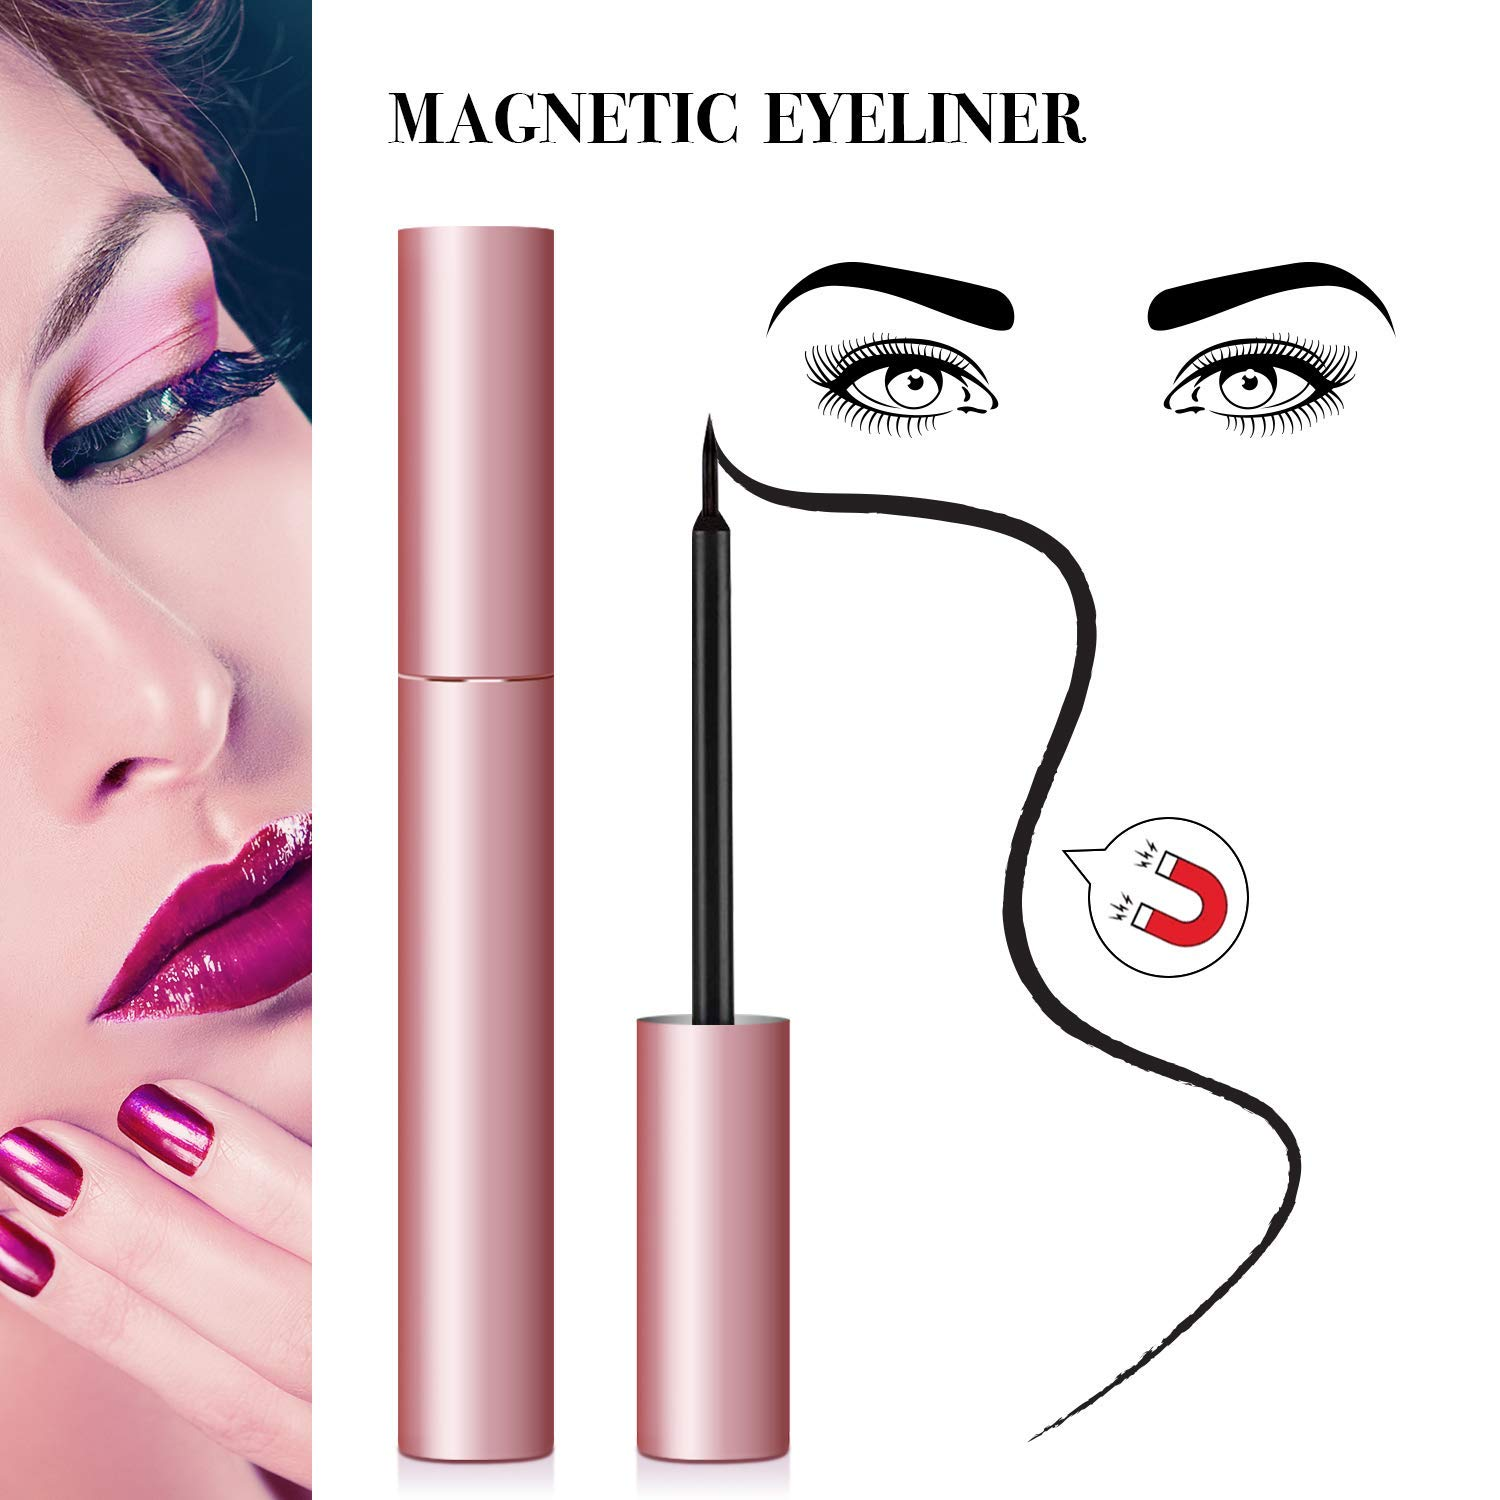 Advanced Magnetic Eyeliner And Magnetic Eyelashes Kit With Tweezers, Easy To Use(Doha) by Vassoull